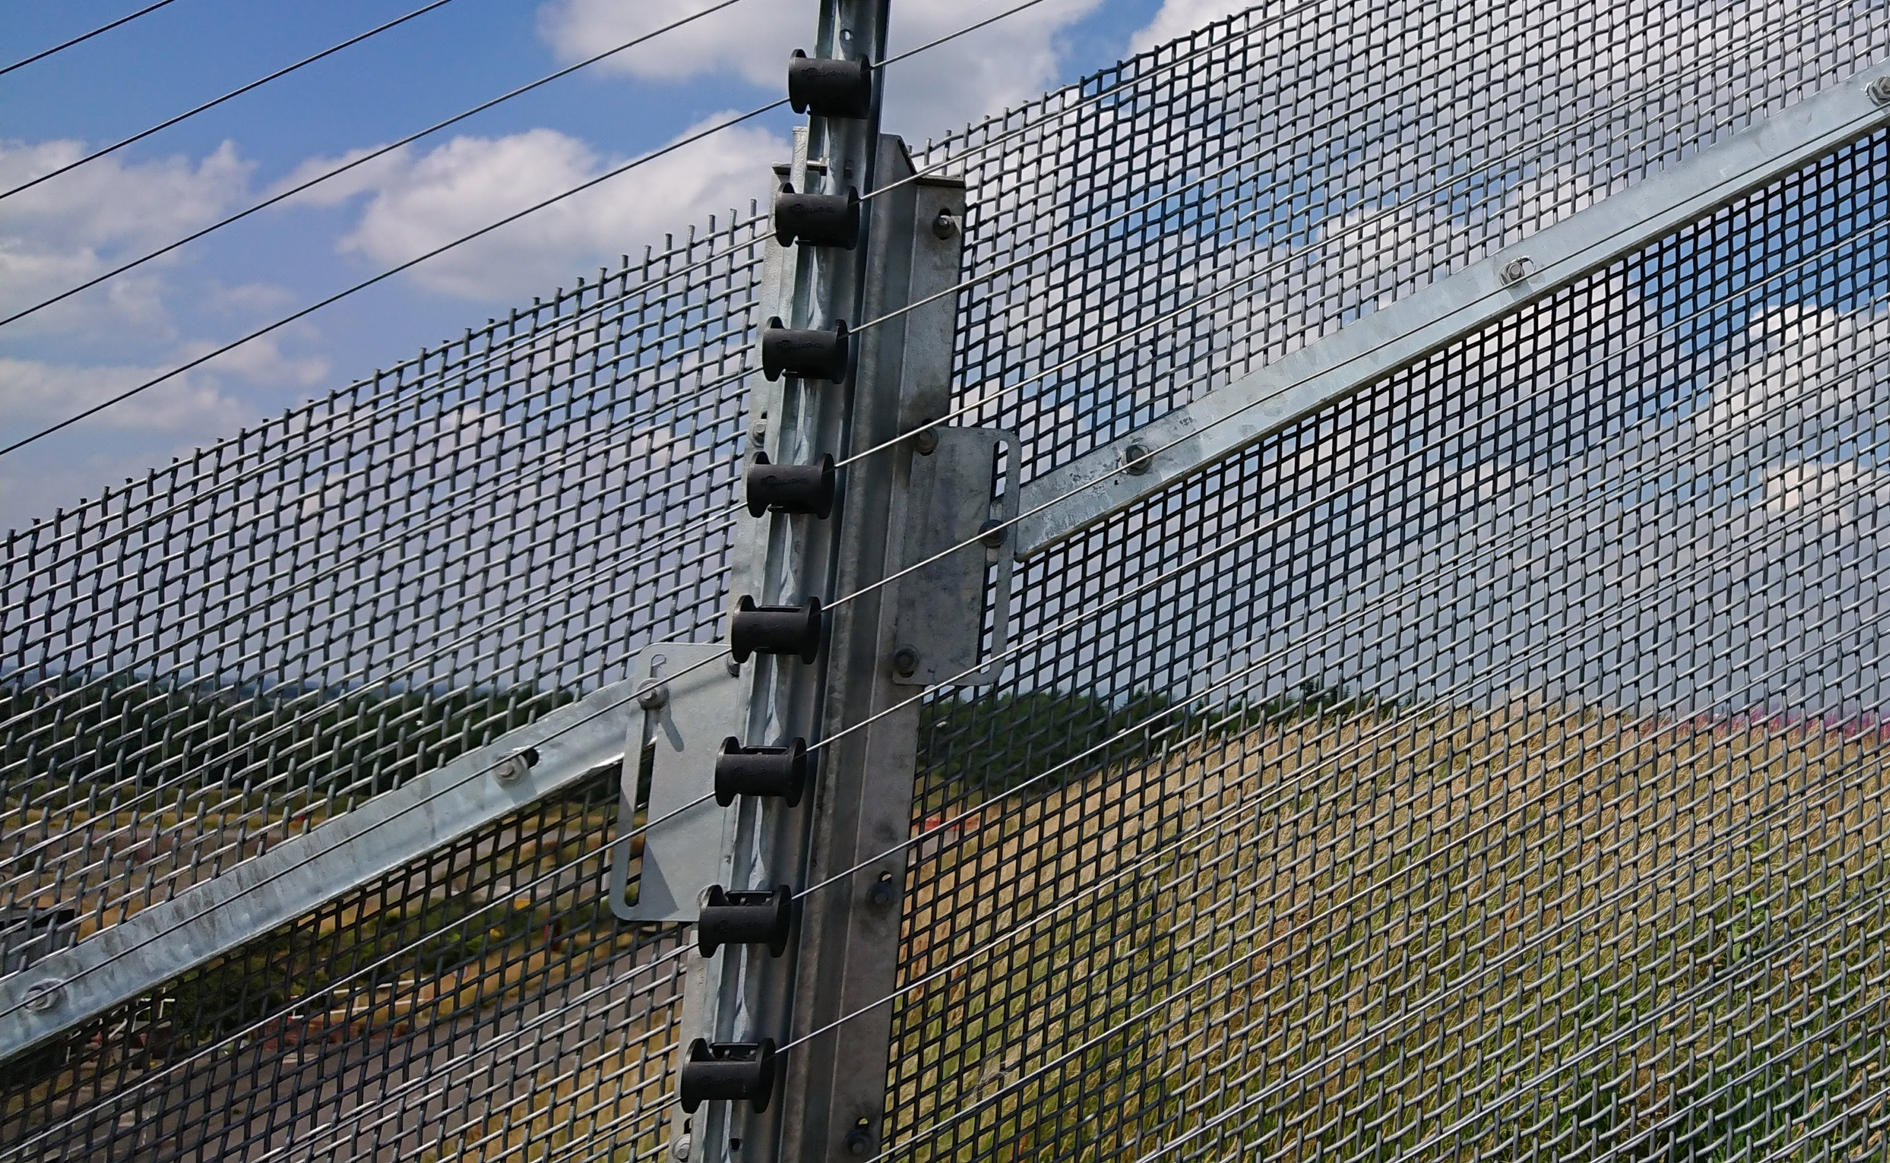 Risk Uk Zaun S Armaweave Perimeter Security Fencing System Achieves